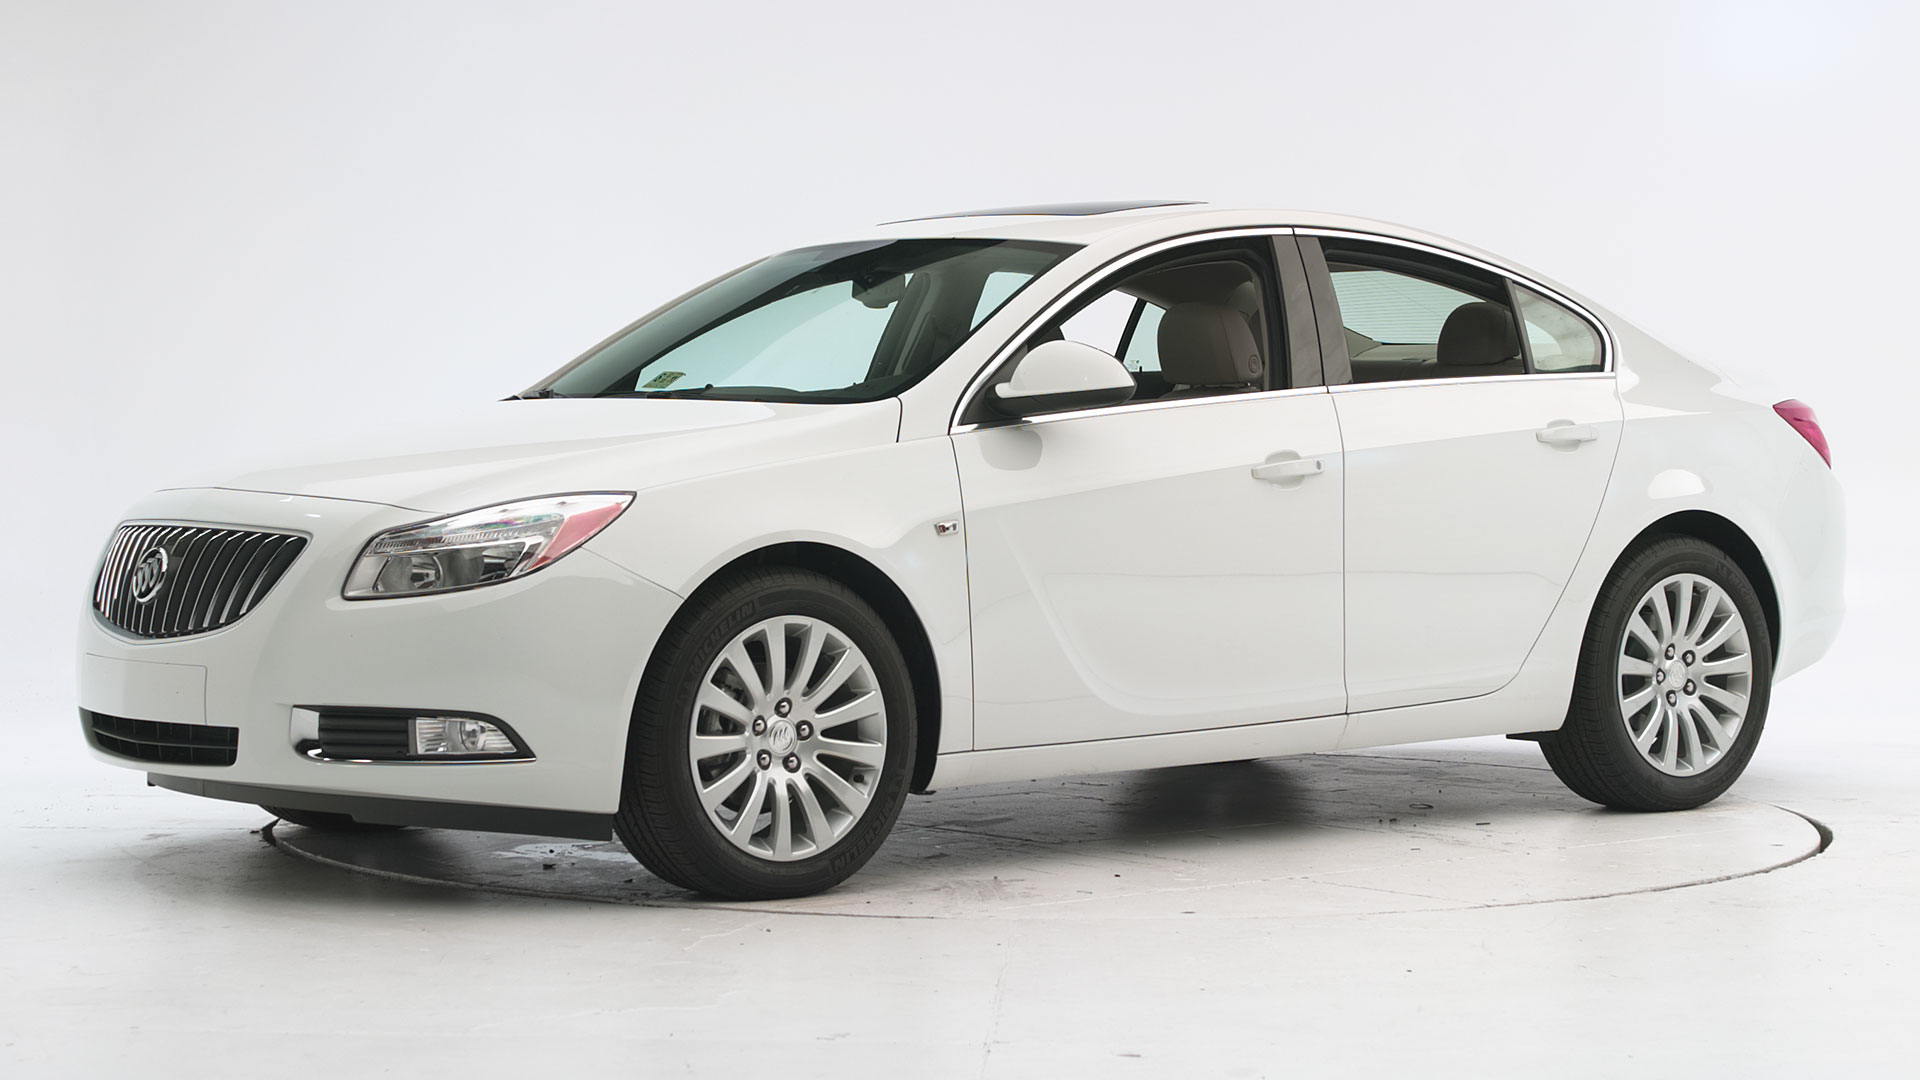 2012 Buick Regal 4-door sedan